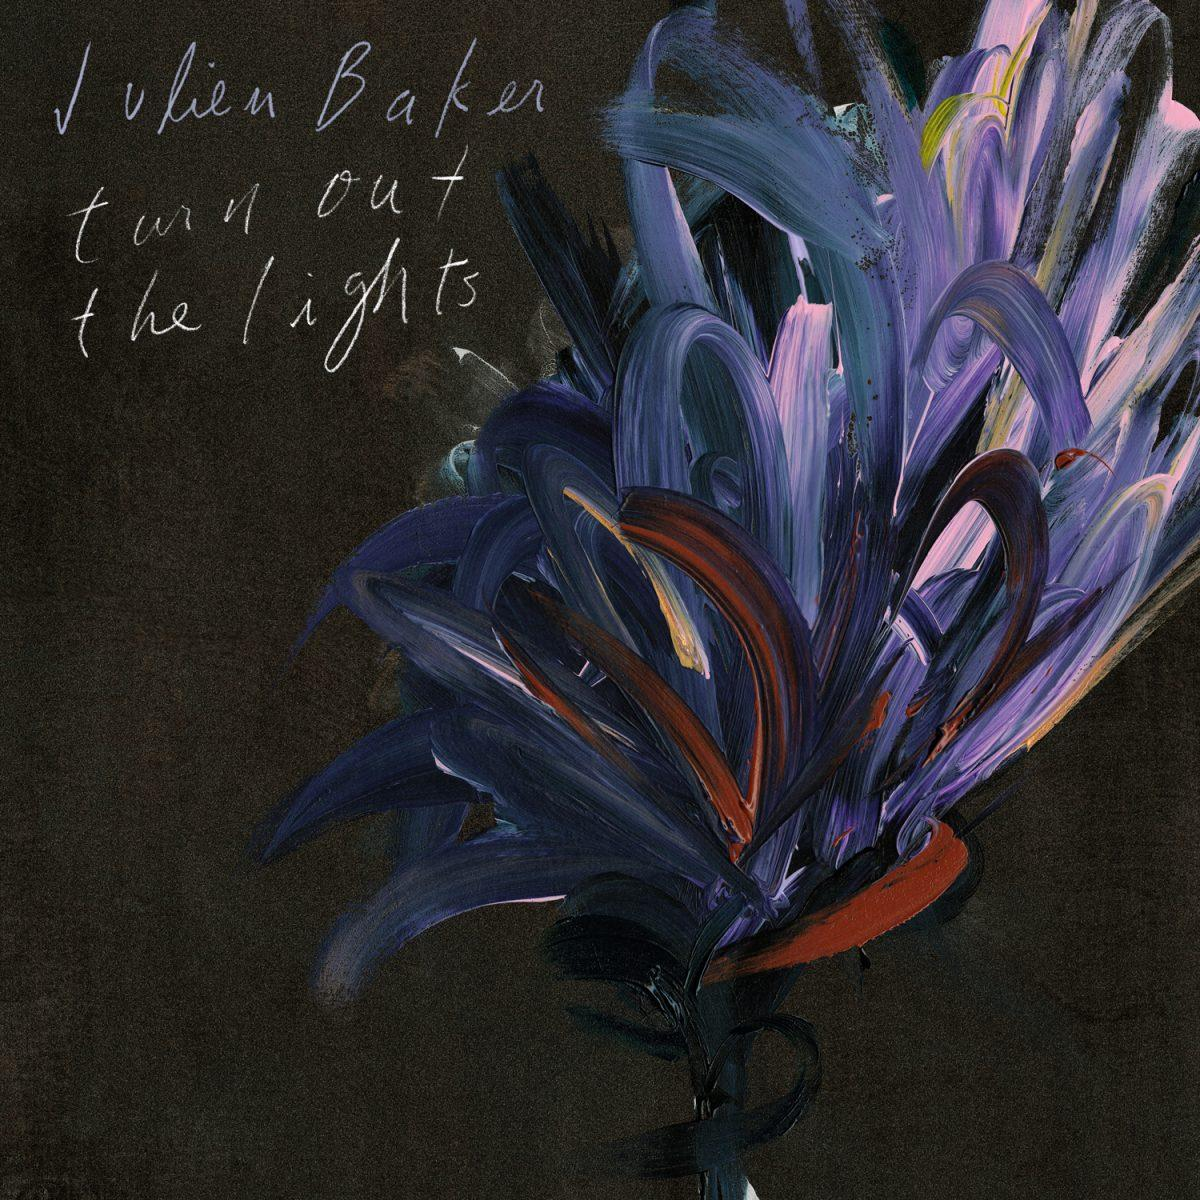 """MATADOR RECORDS Julien Baker addresses her demons with a glimmer of hope in her second album, """"Turn out the Lights,"""" released Oct. 27."""